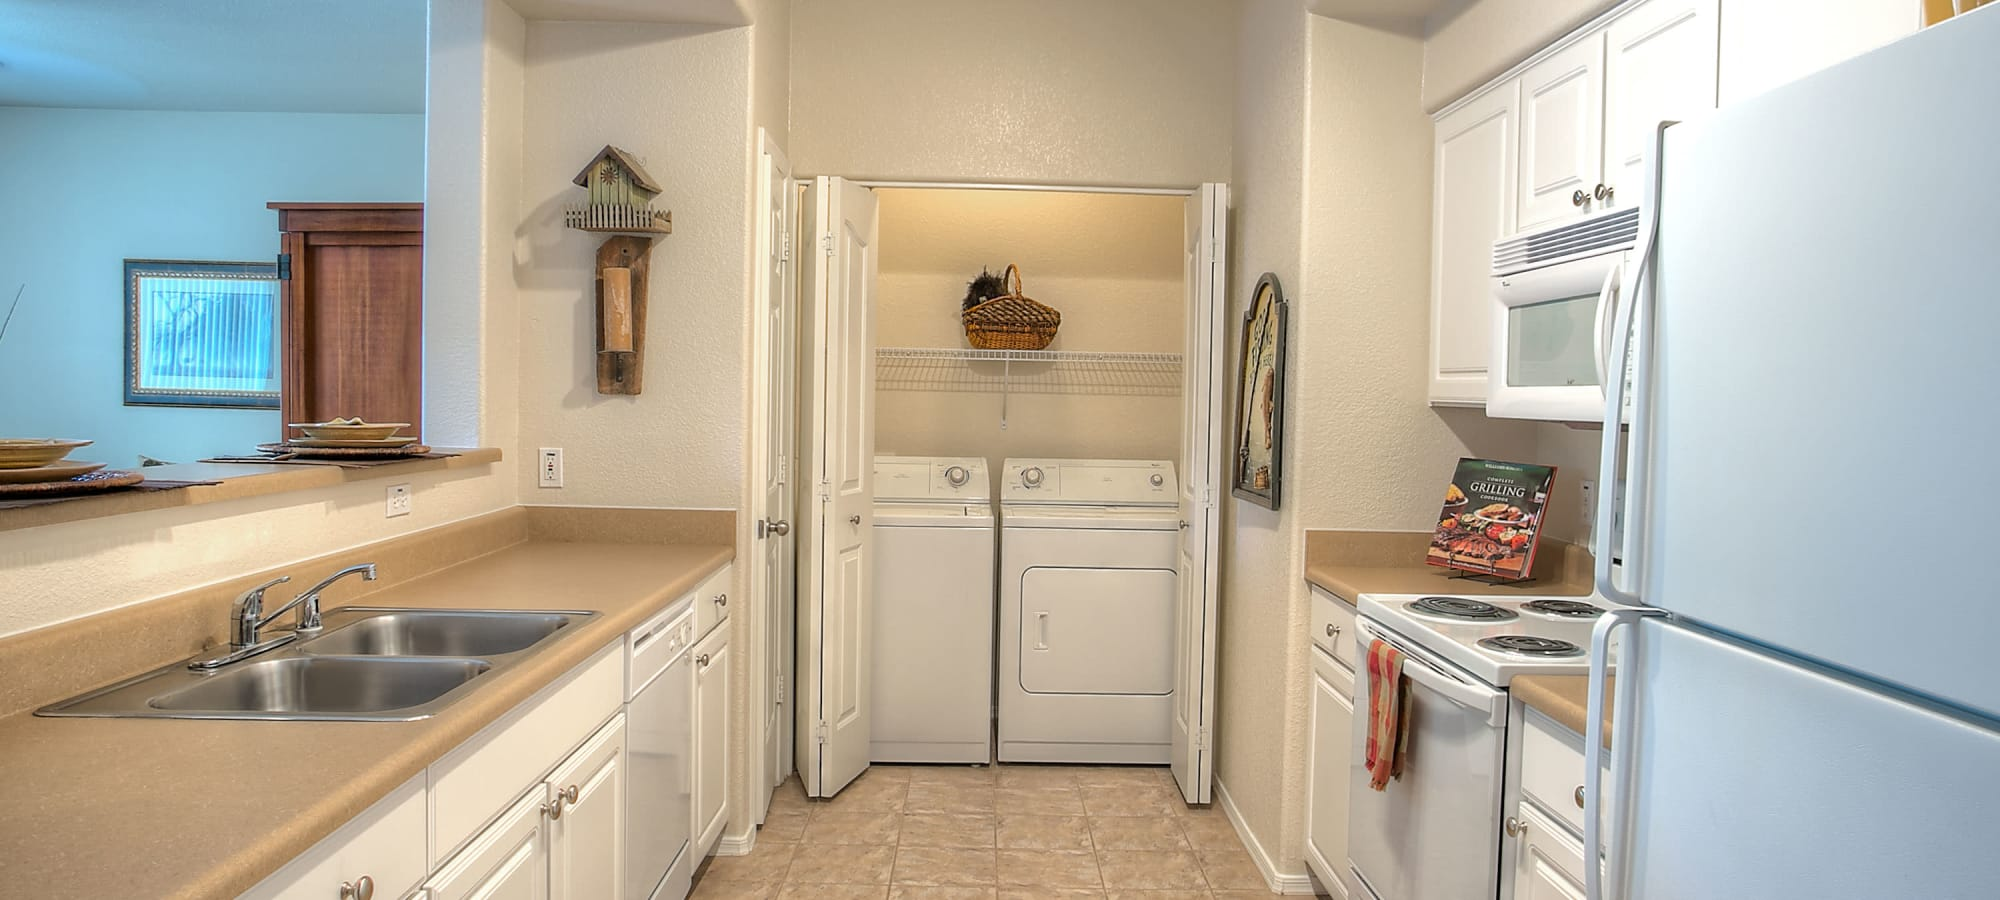 Kitchen leading into the washer and dryer at Remington Ranch in Litchfield Park, Arizona